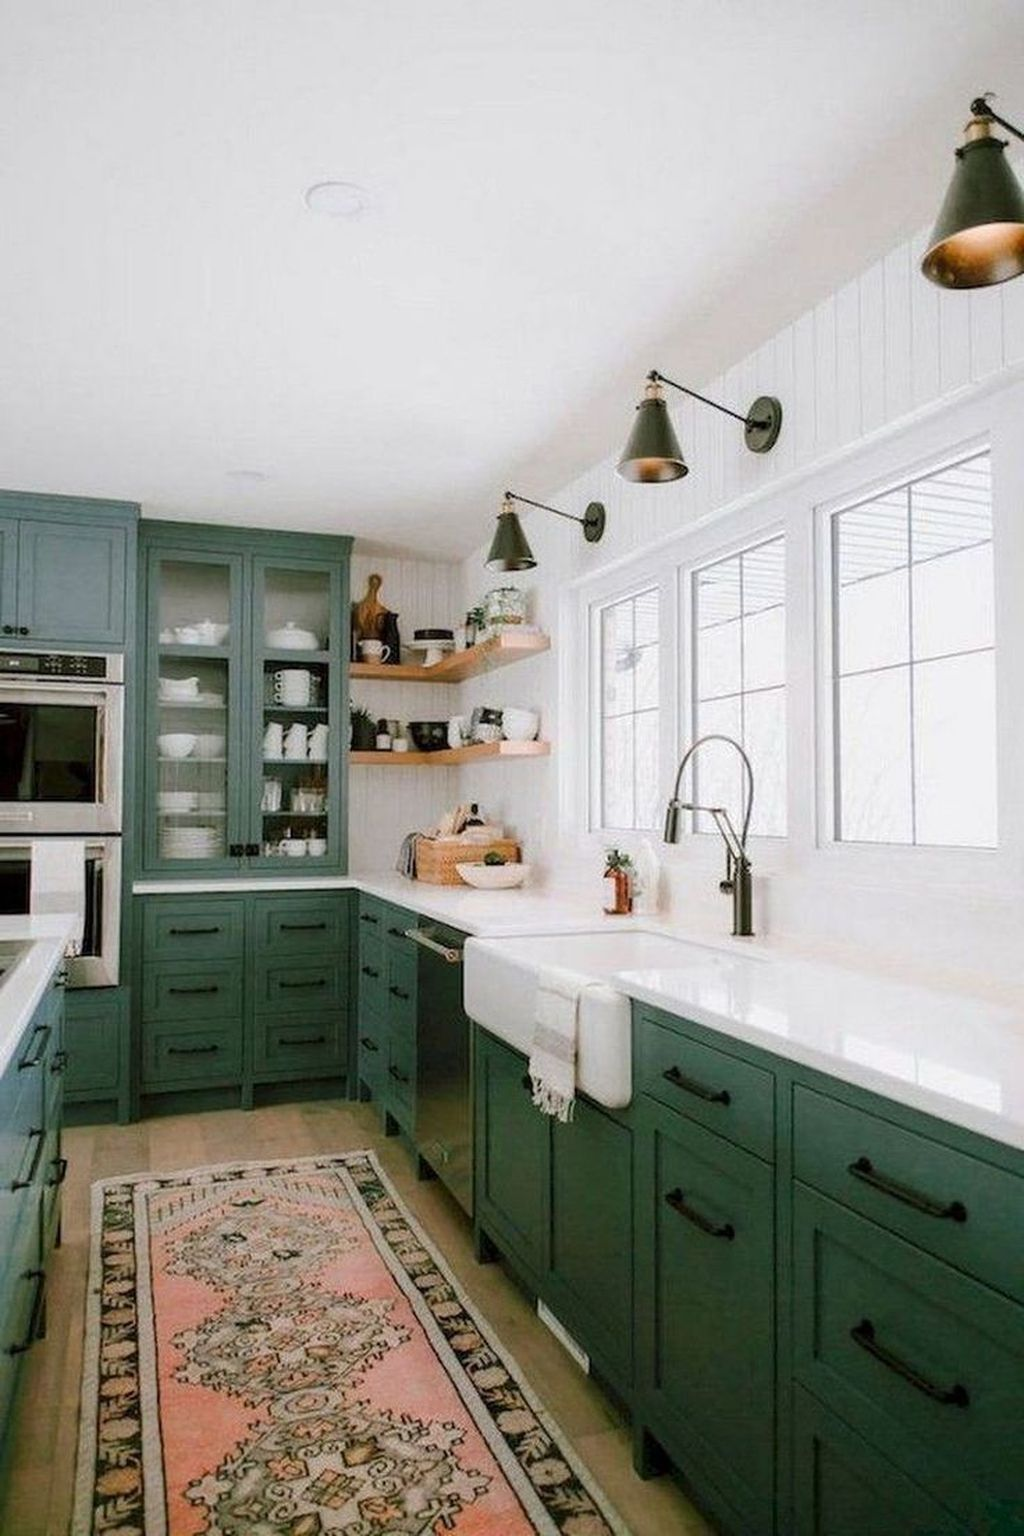 20 Cabinet Elegant Ferme Makeover Cuisine Design Ideas Ce Tres Confortable In 2020 Green Kitchen Designs Modern Farmhouse Kitchens Kitchen Cabinet Design